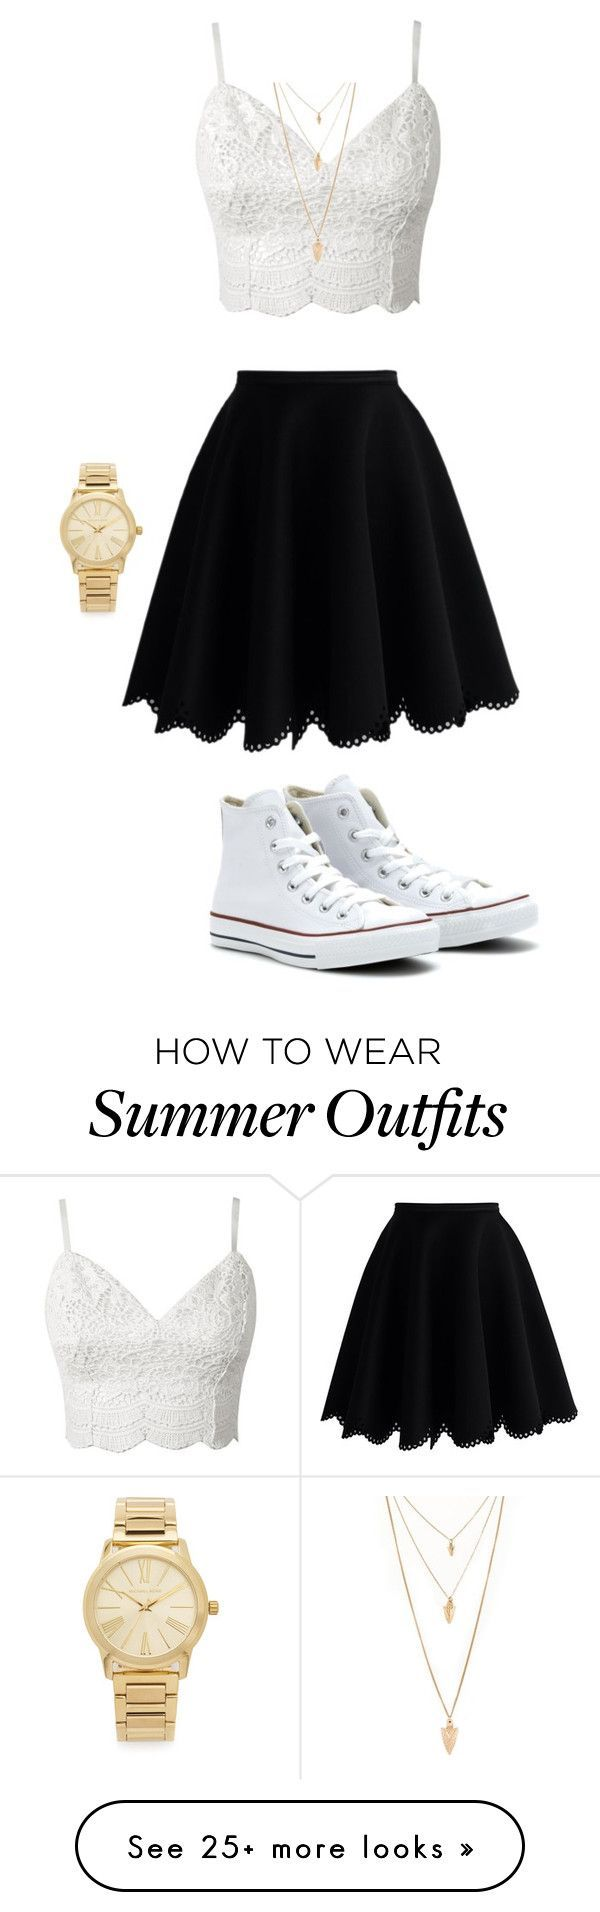 """""""Cute summer outfit"""" by itsnina101 on Polyvore featuring Chicwish, Converse, Michael Kors and Forever 21 - green fall dresses, dresses plus size, light blue dresses for juniors *sponsored https://www.pinterest.com/dresses_dress/ https://www.pinterest.com/explore/dresses/ https://www.pinterest.com/dresses_dress/flower-girl-dresses/ http://www.neimanmarcus.com/Womens-Clothing/Dresses/cat43810733/c.cat"""